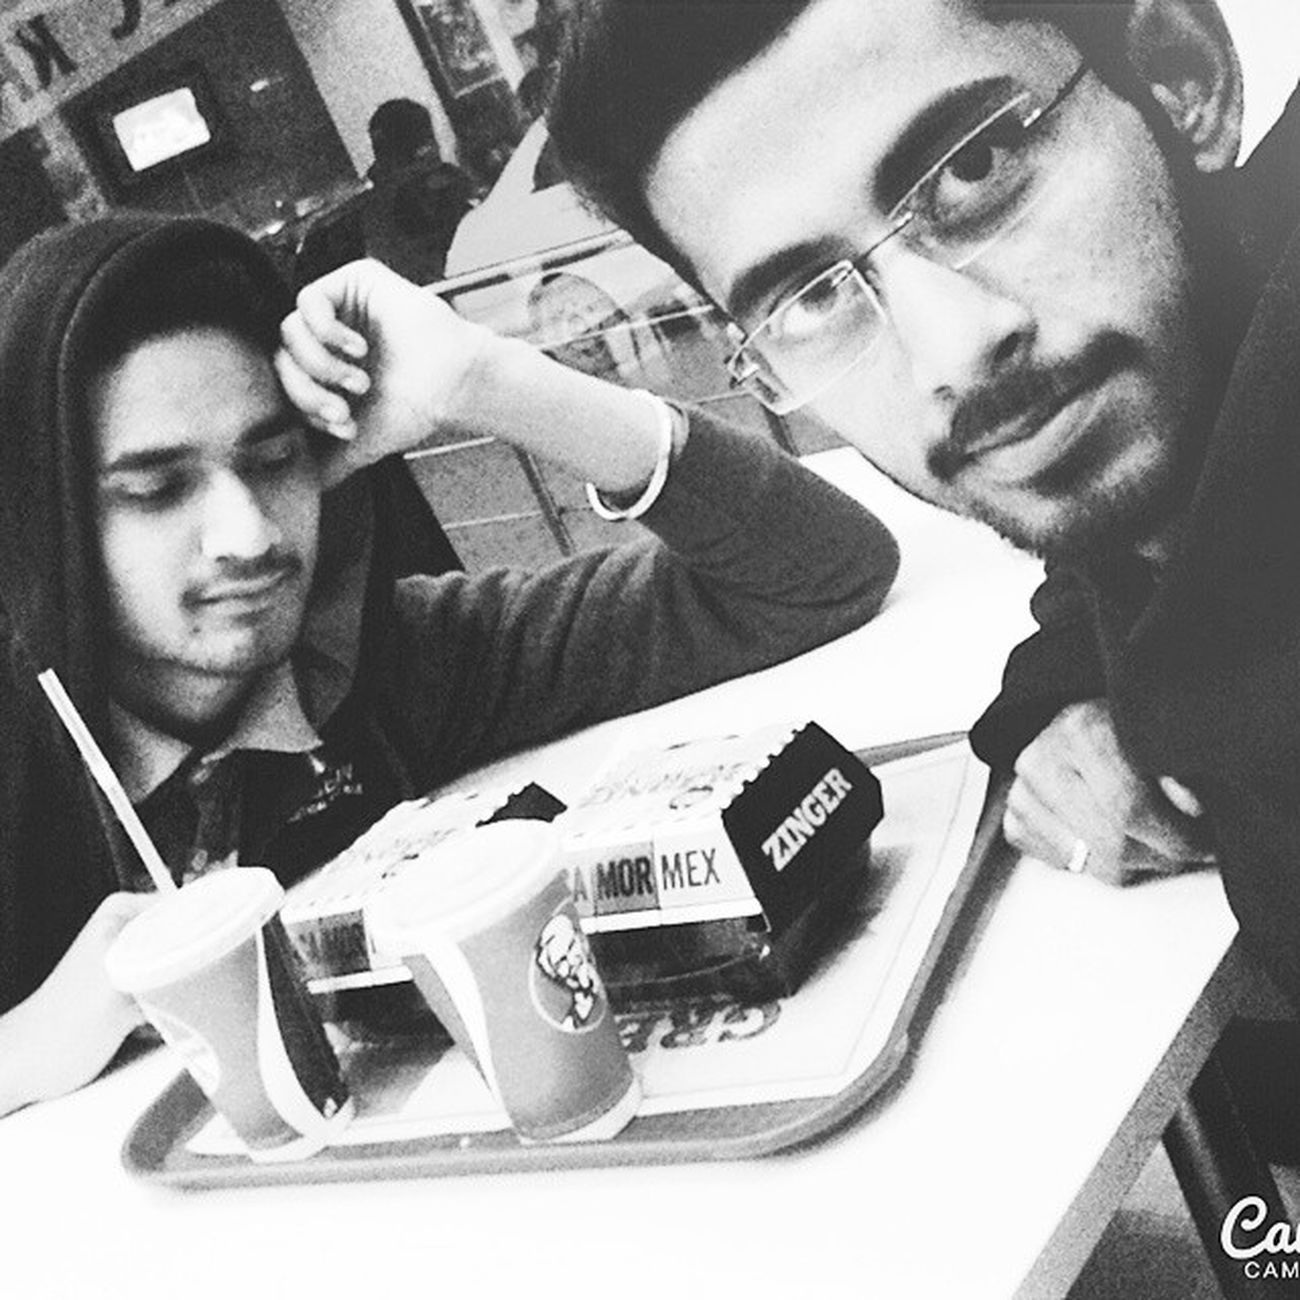 @kfc with TaNMay MexicanSalsa 😝😝😁😁 was SooooooooGooooood 😁😀😀